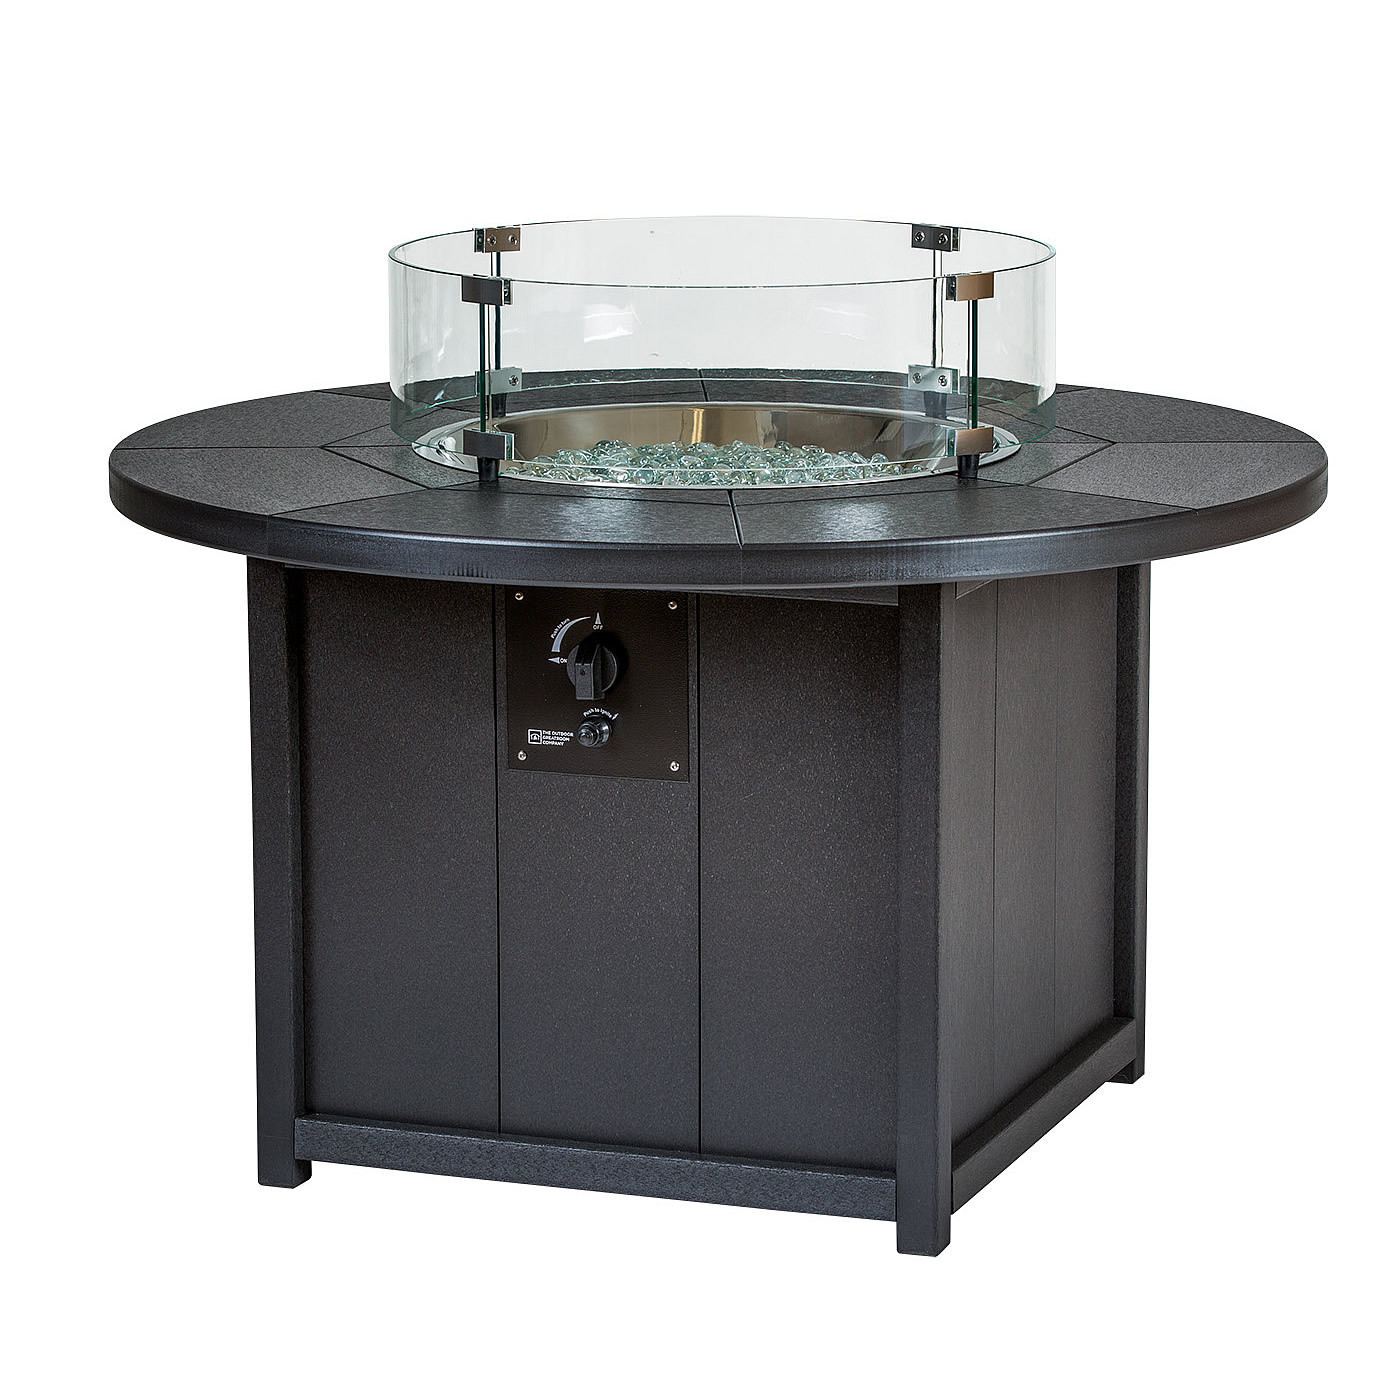 Finch Amish Poly 42 In Seaaira Round Fire Pit Fire Tables Ice Pit Tables Finch Collections